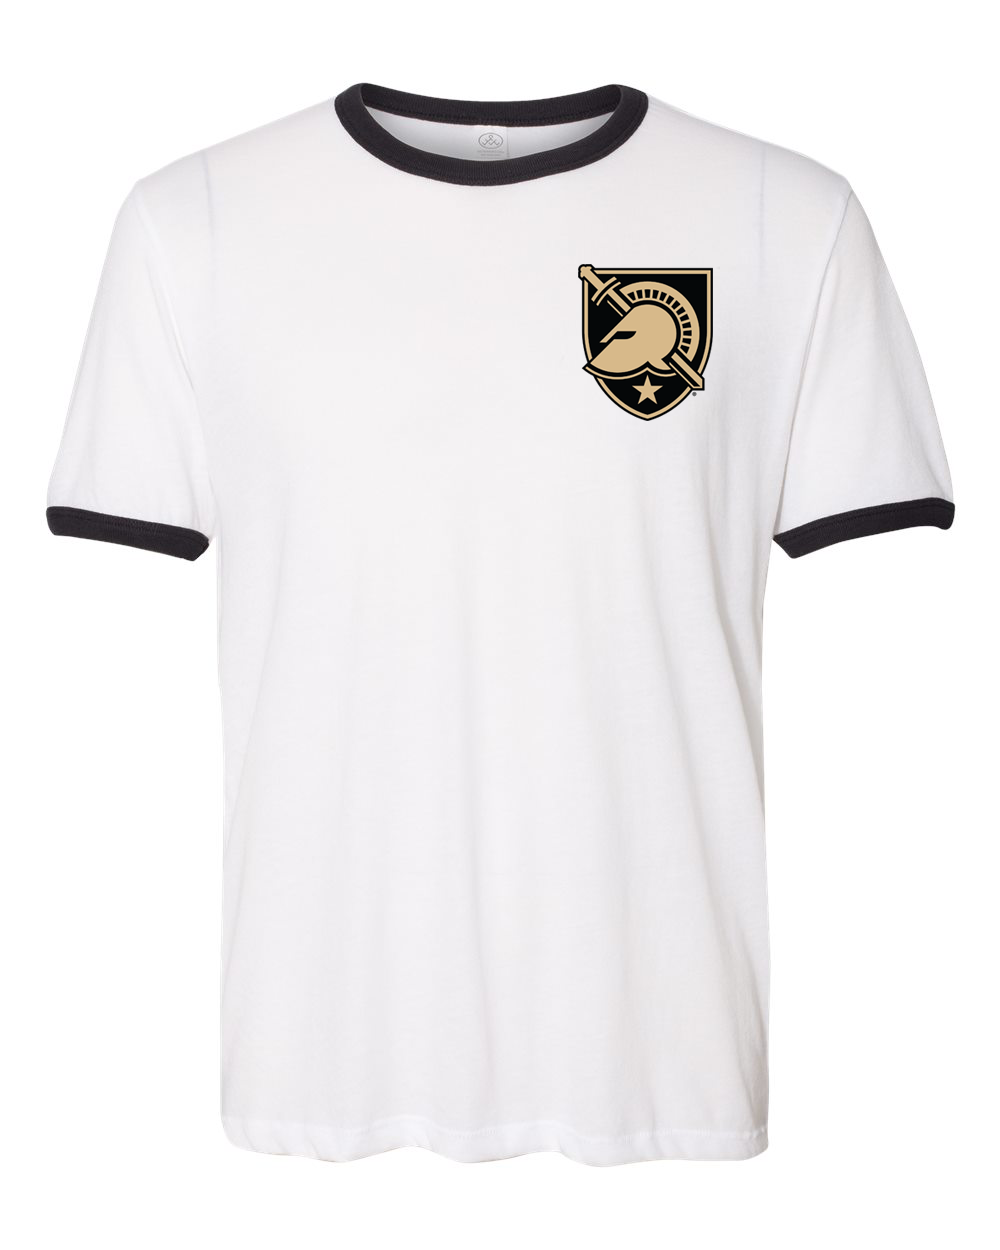 ARMY - WEST POINT Black Knights Men's Ringer Tee